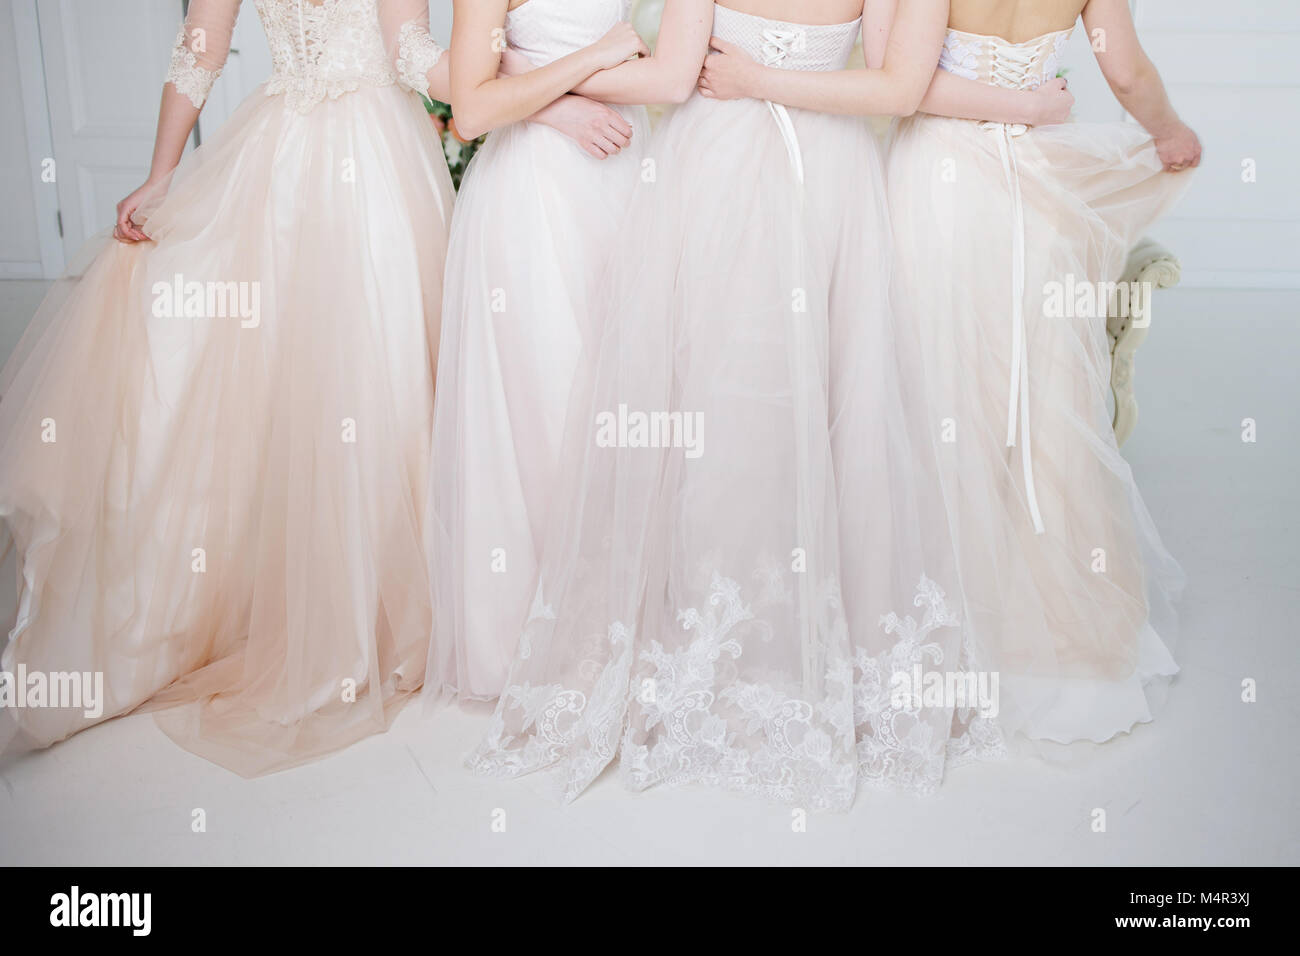 Bride in wedding salon. Four beautiful girl are in each other's arms. Close-up lace skirts - Stock Image